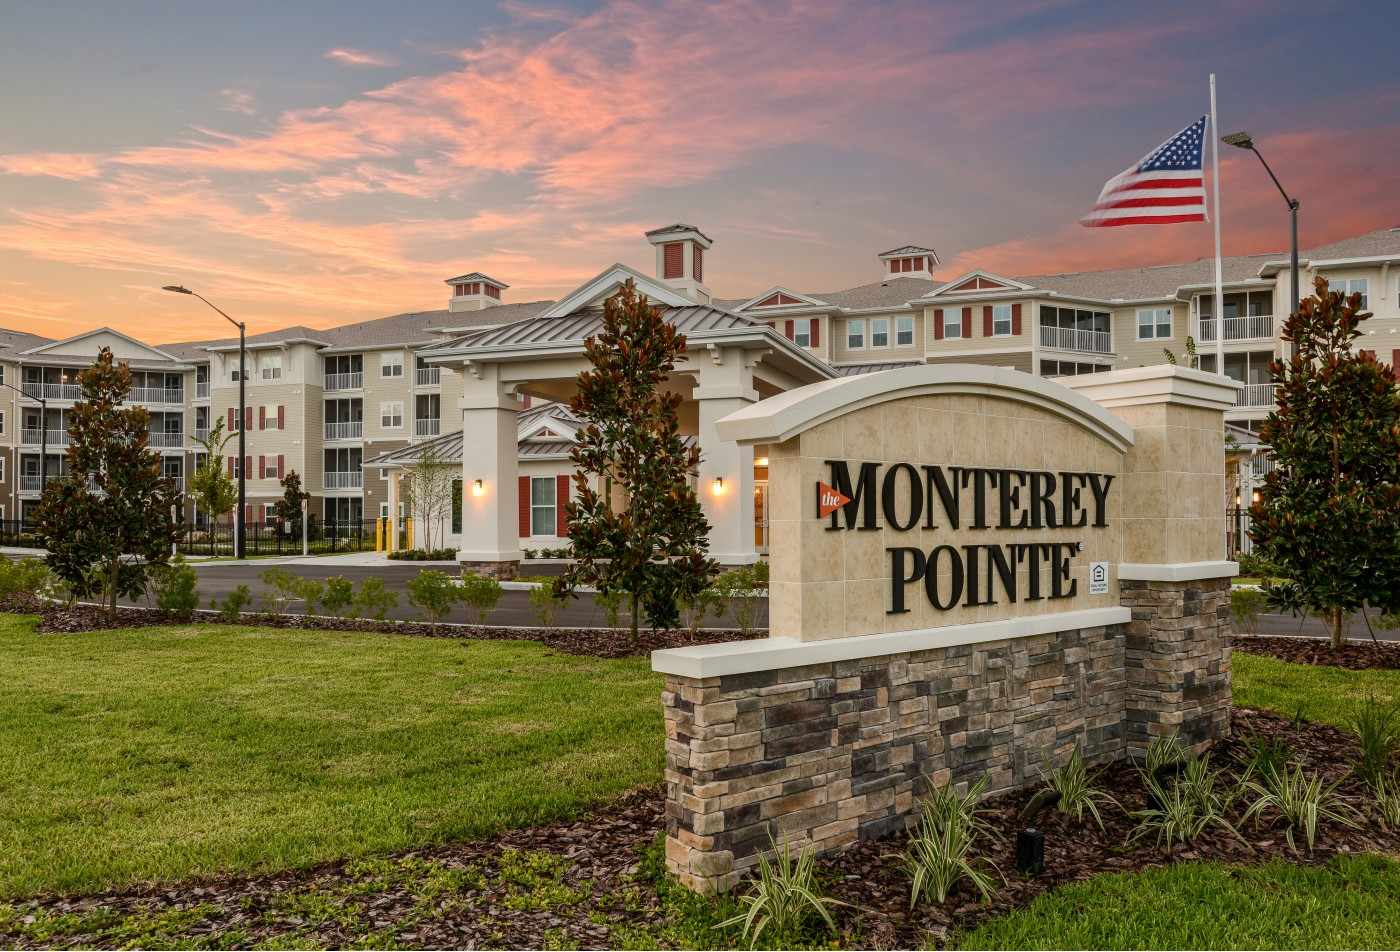 Monterey Pointe Entry Area